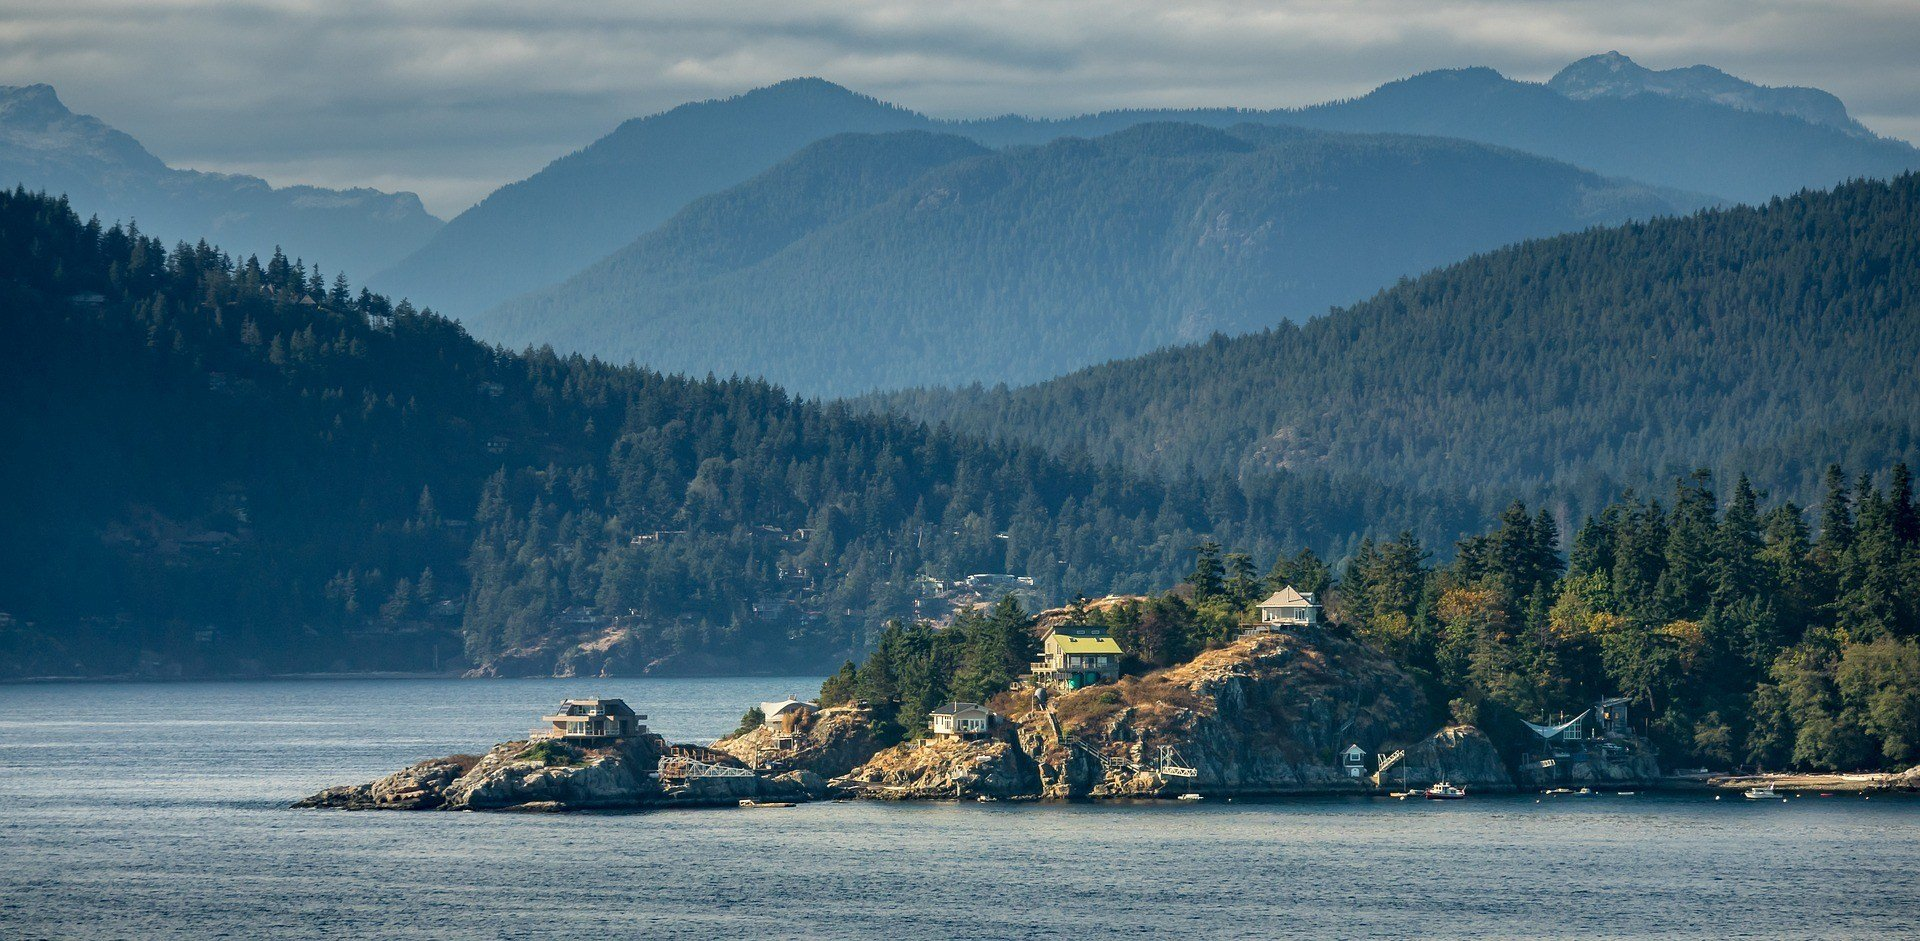 The scenery of Vancouver Island.